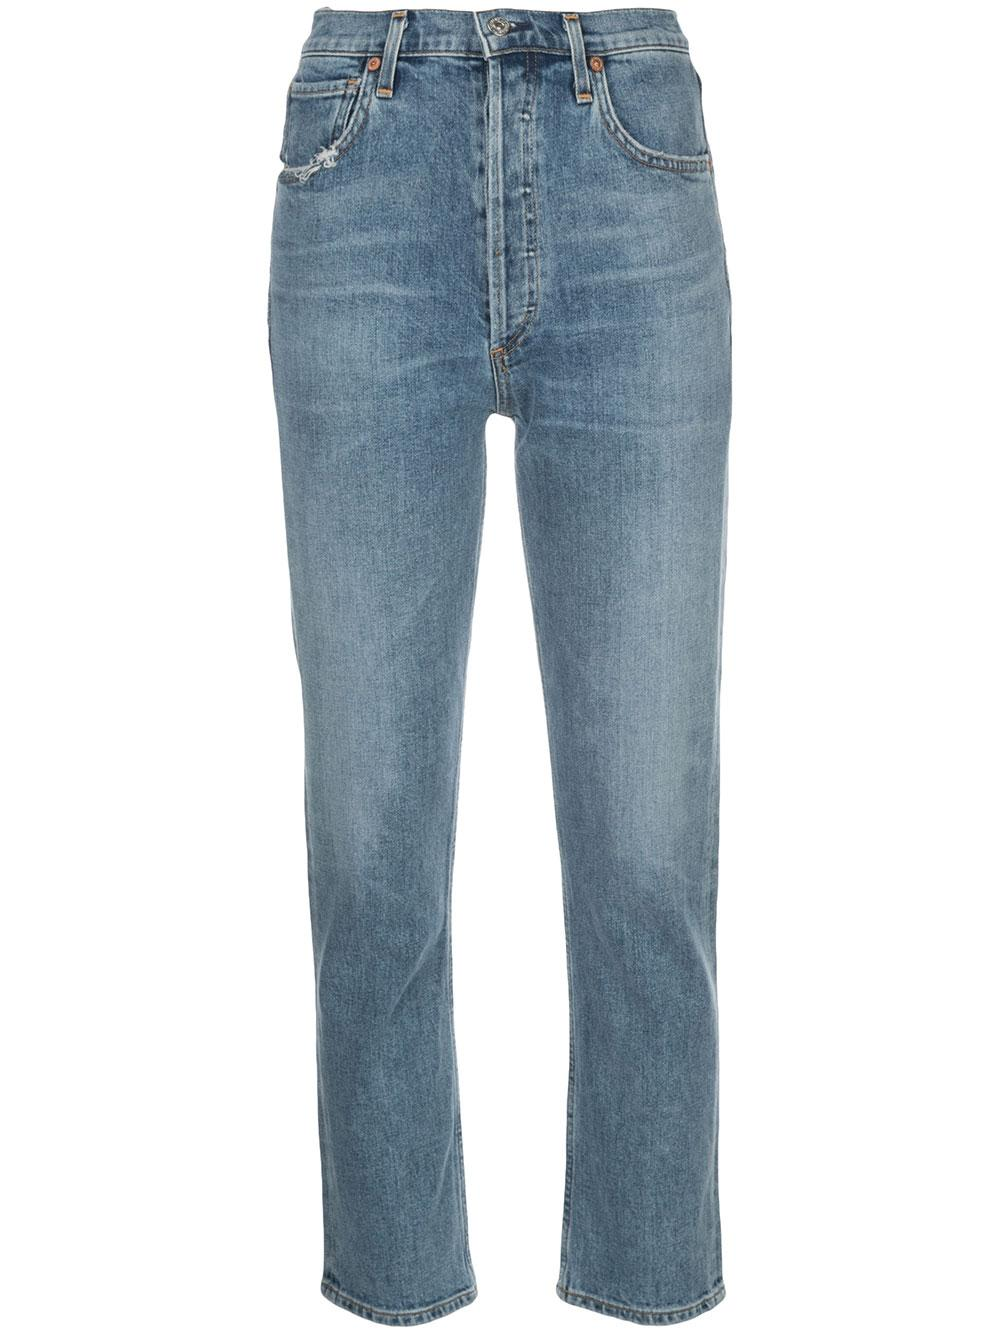 Charlotte High Rise Straight Jean Item # 1731-1147